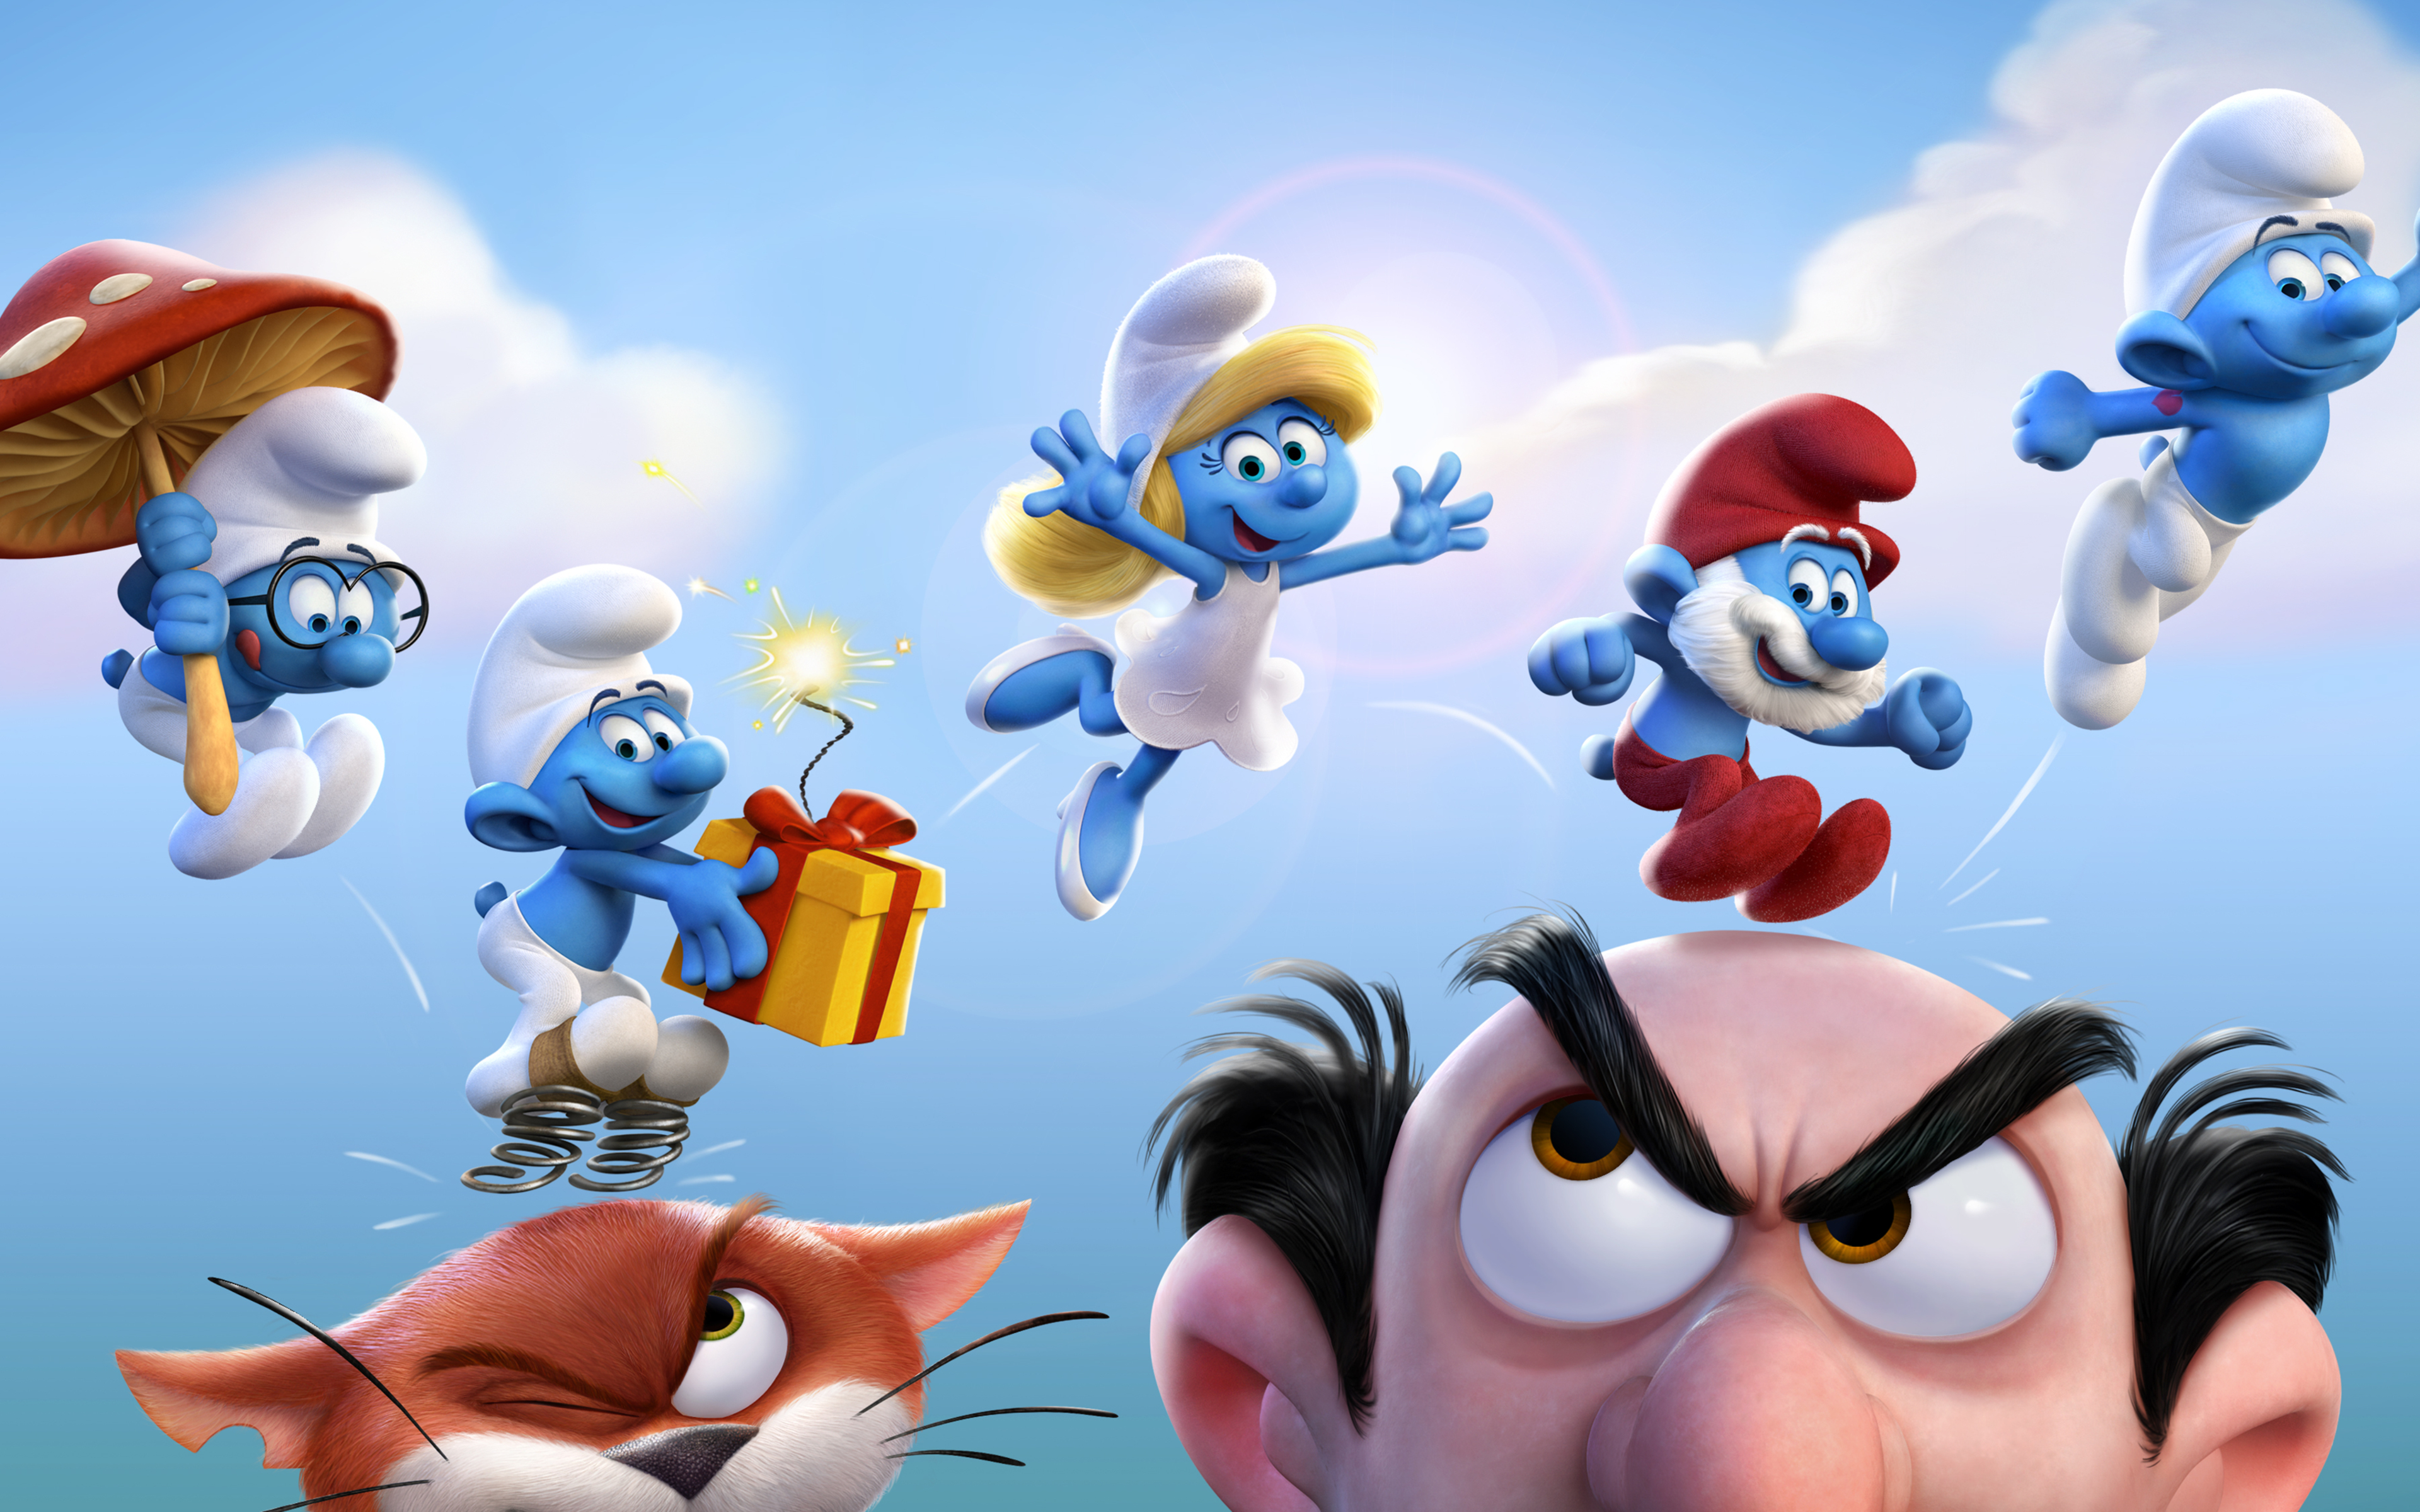 smurfs-the-lost-village-official-image.jpg